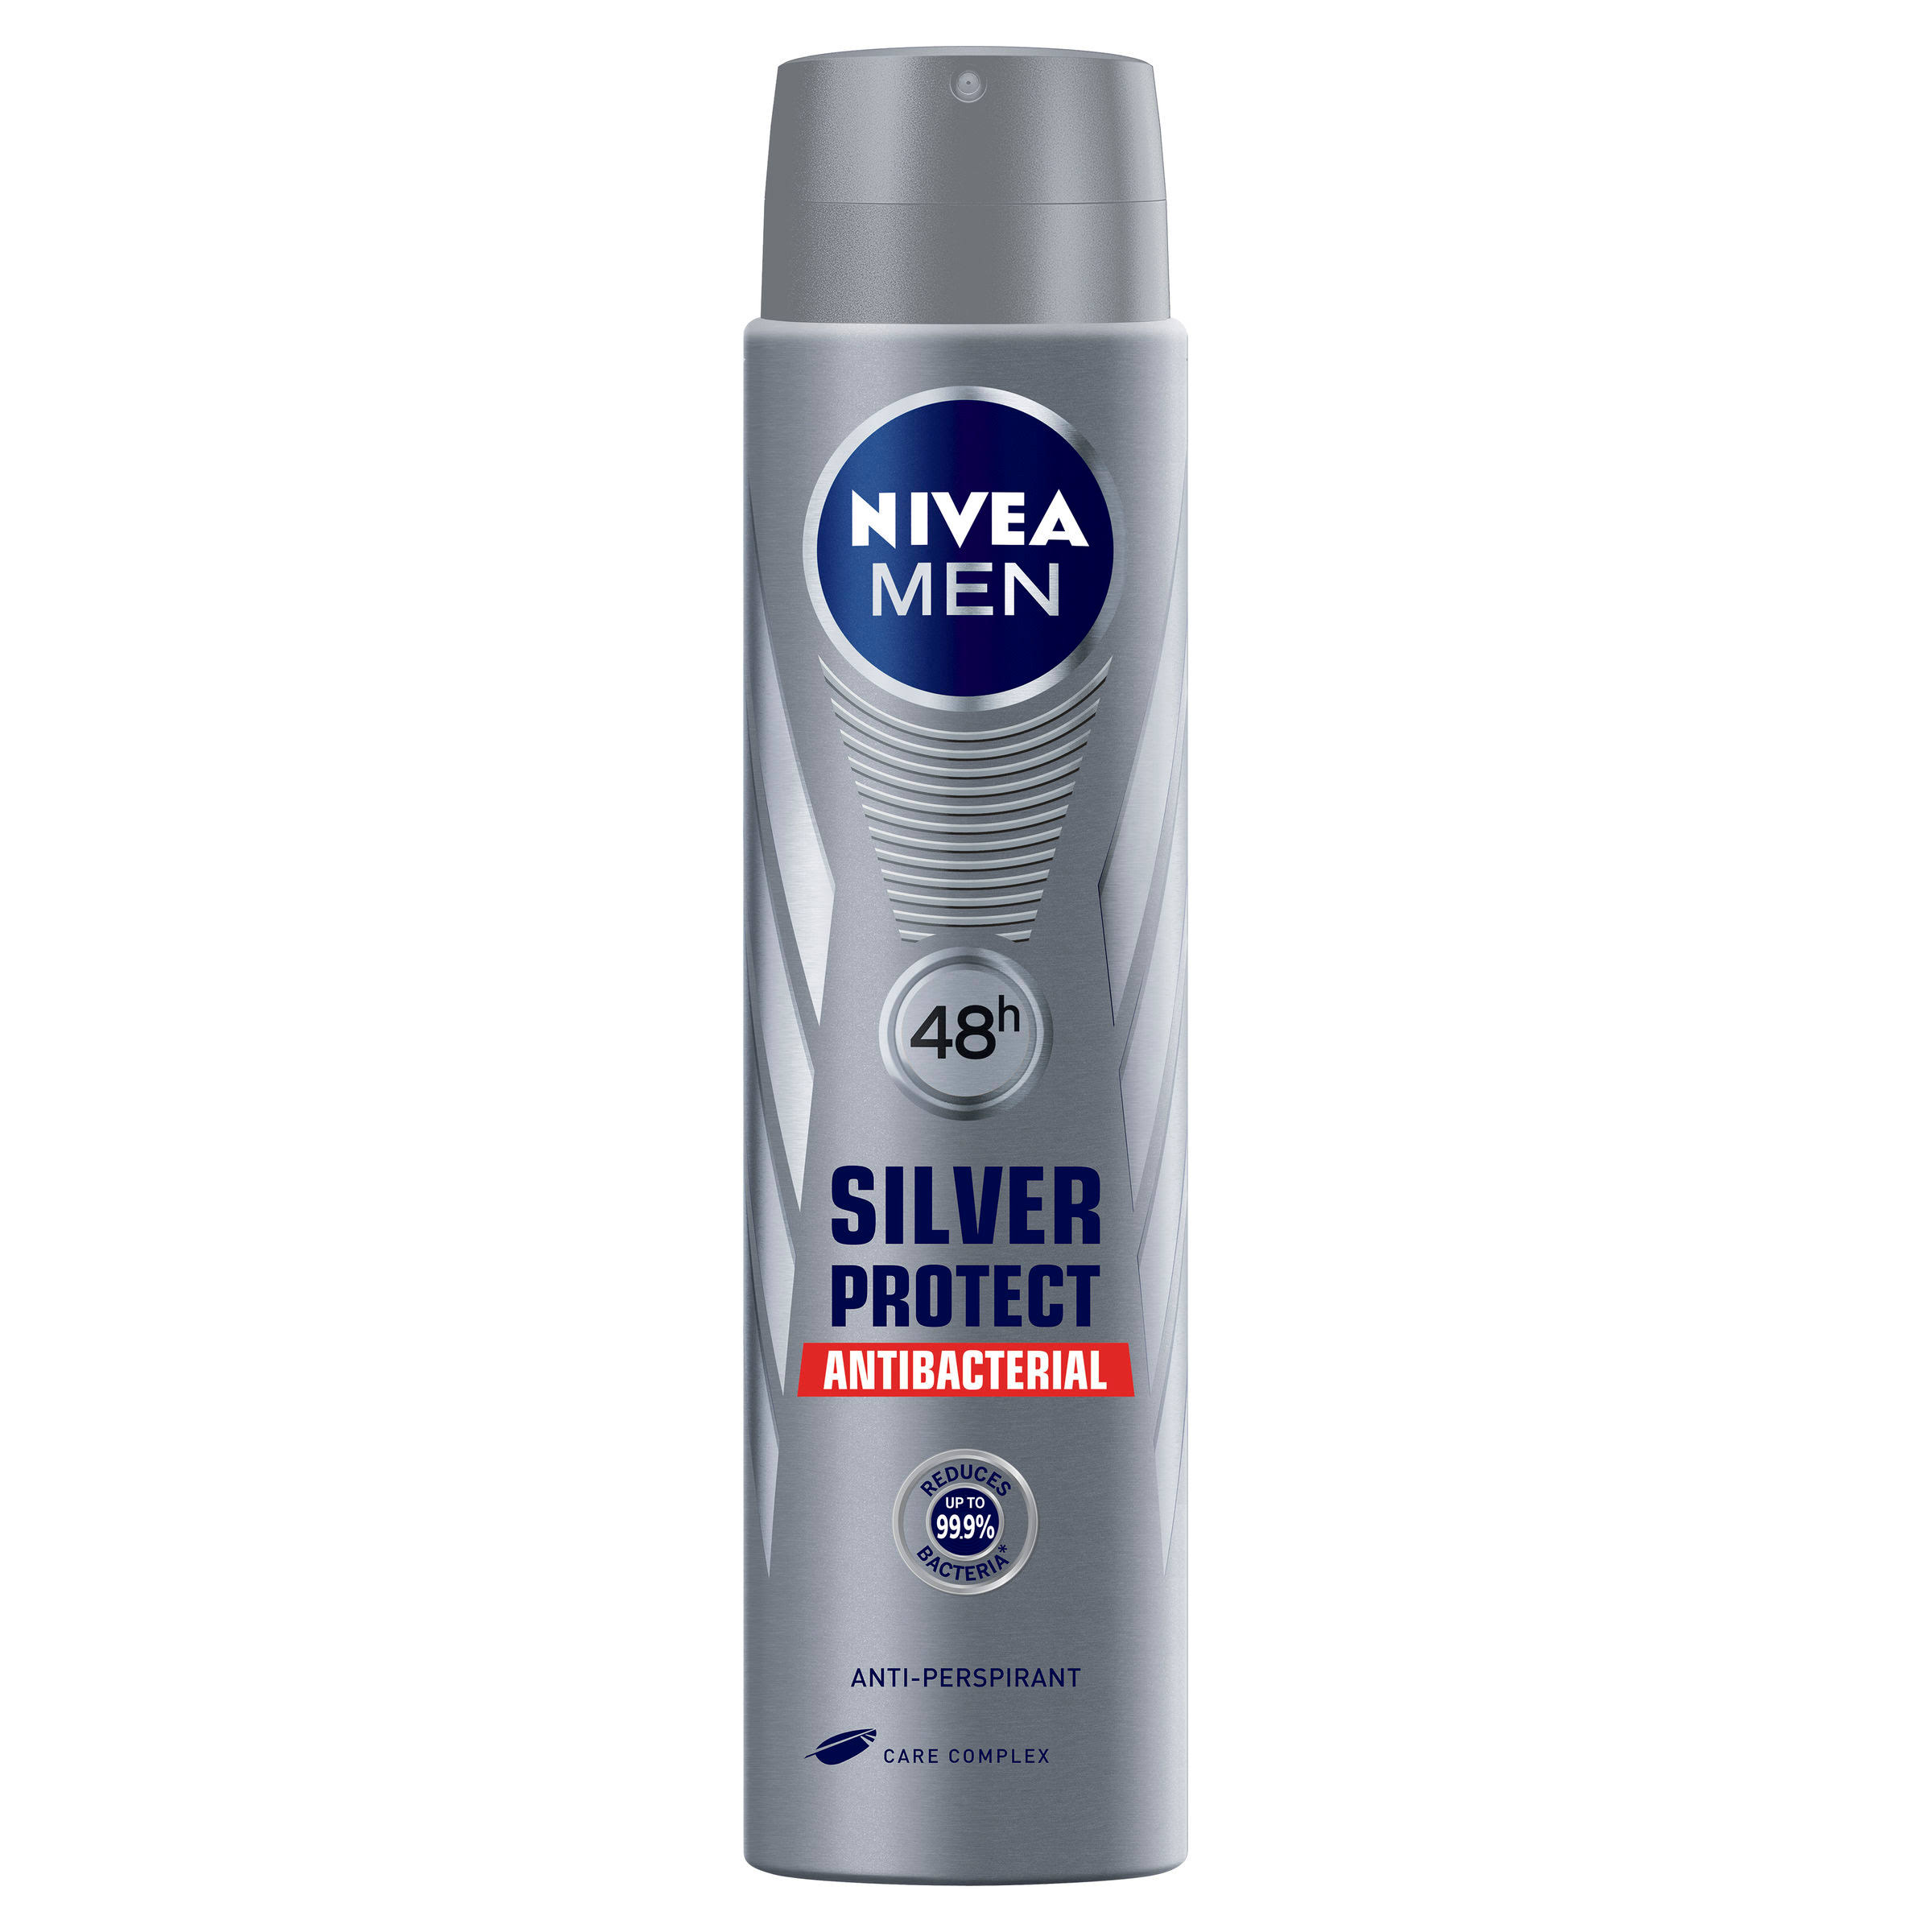 Nivea Men Silver Protect Anti-Perspirant Deodorant Spray - 250ml